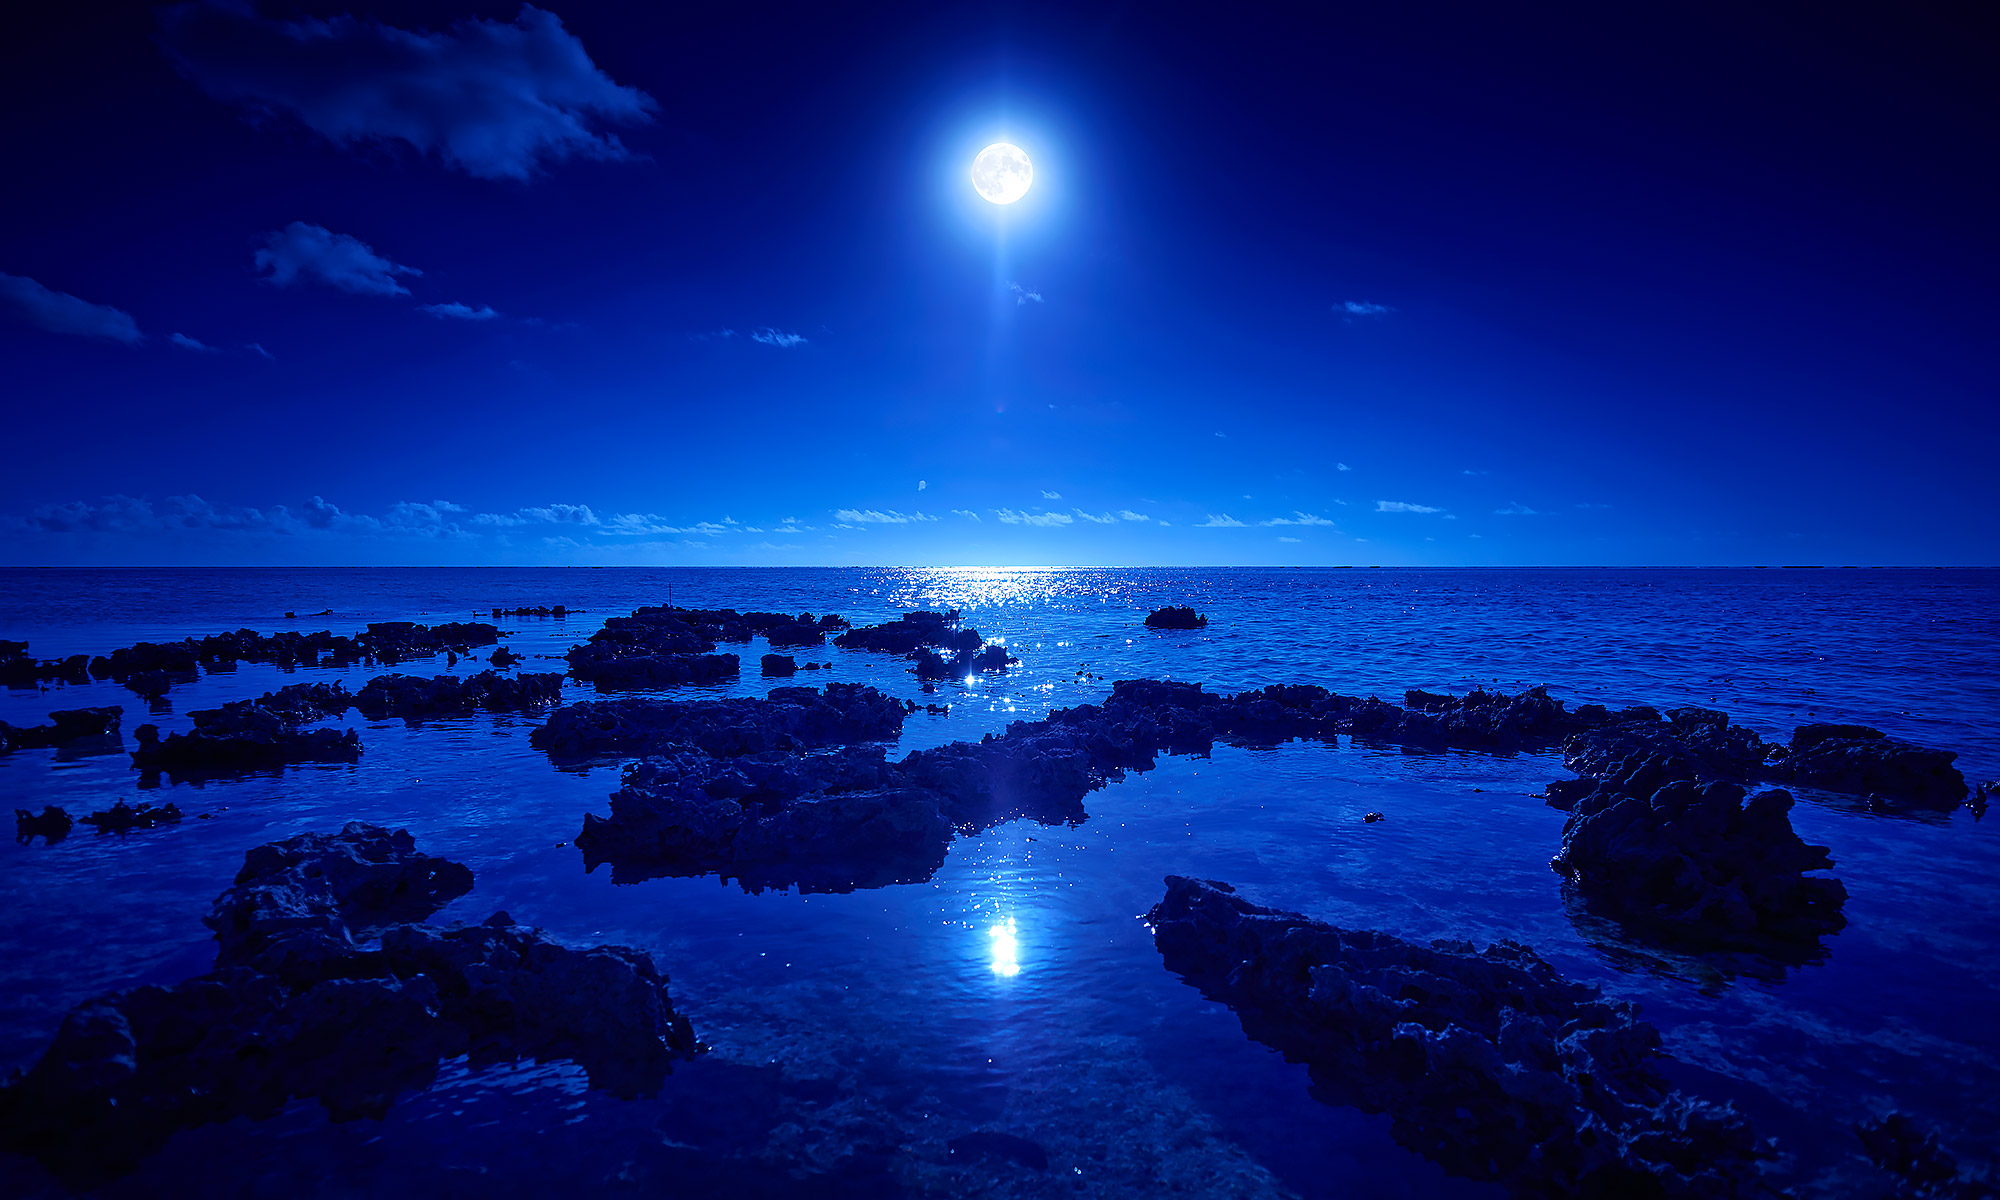 Luxury-Resort-Photography-Moon-Ocean